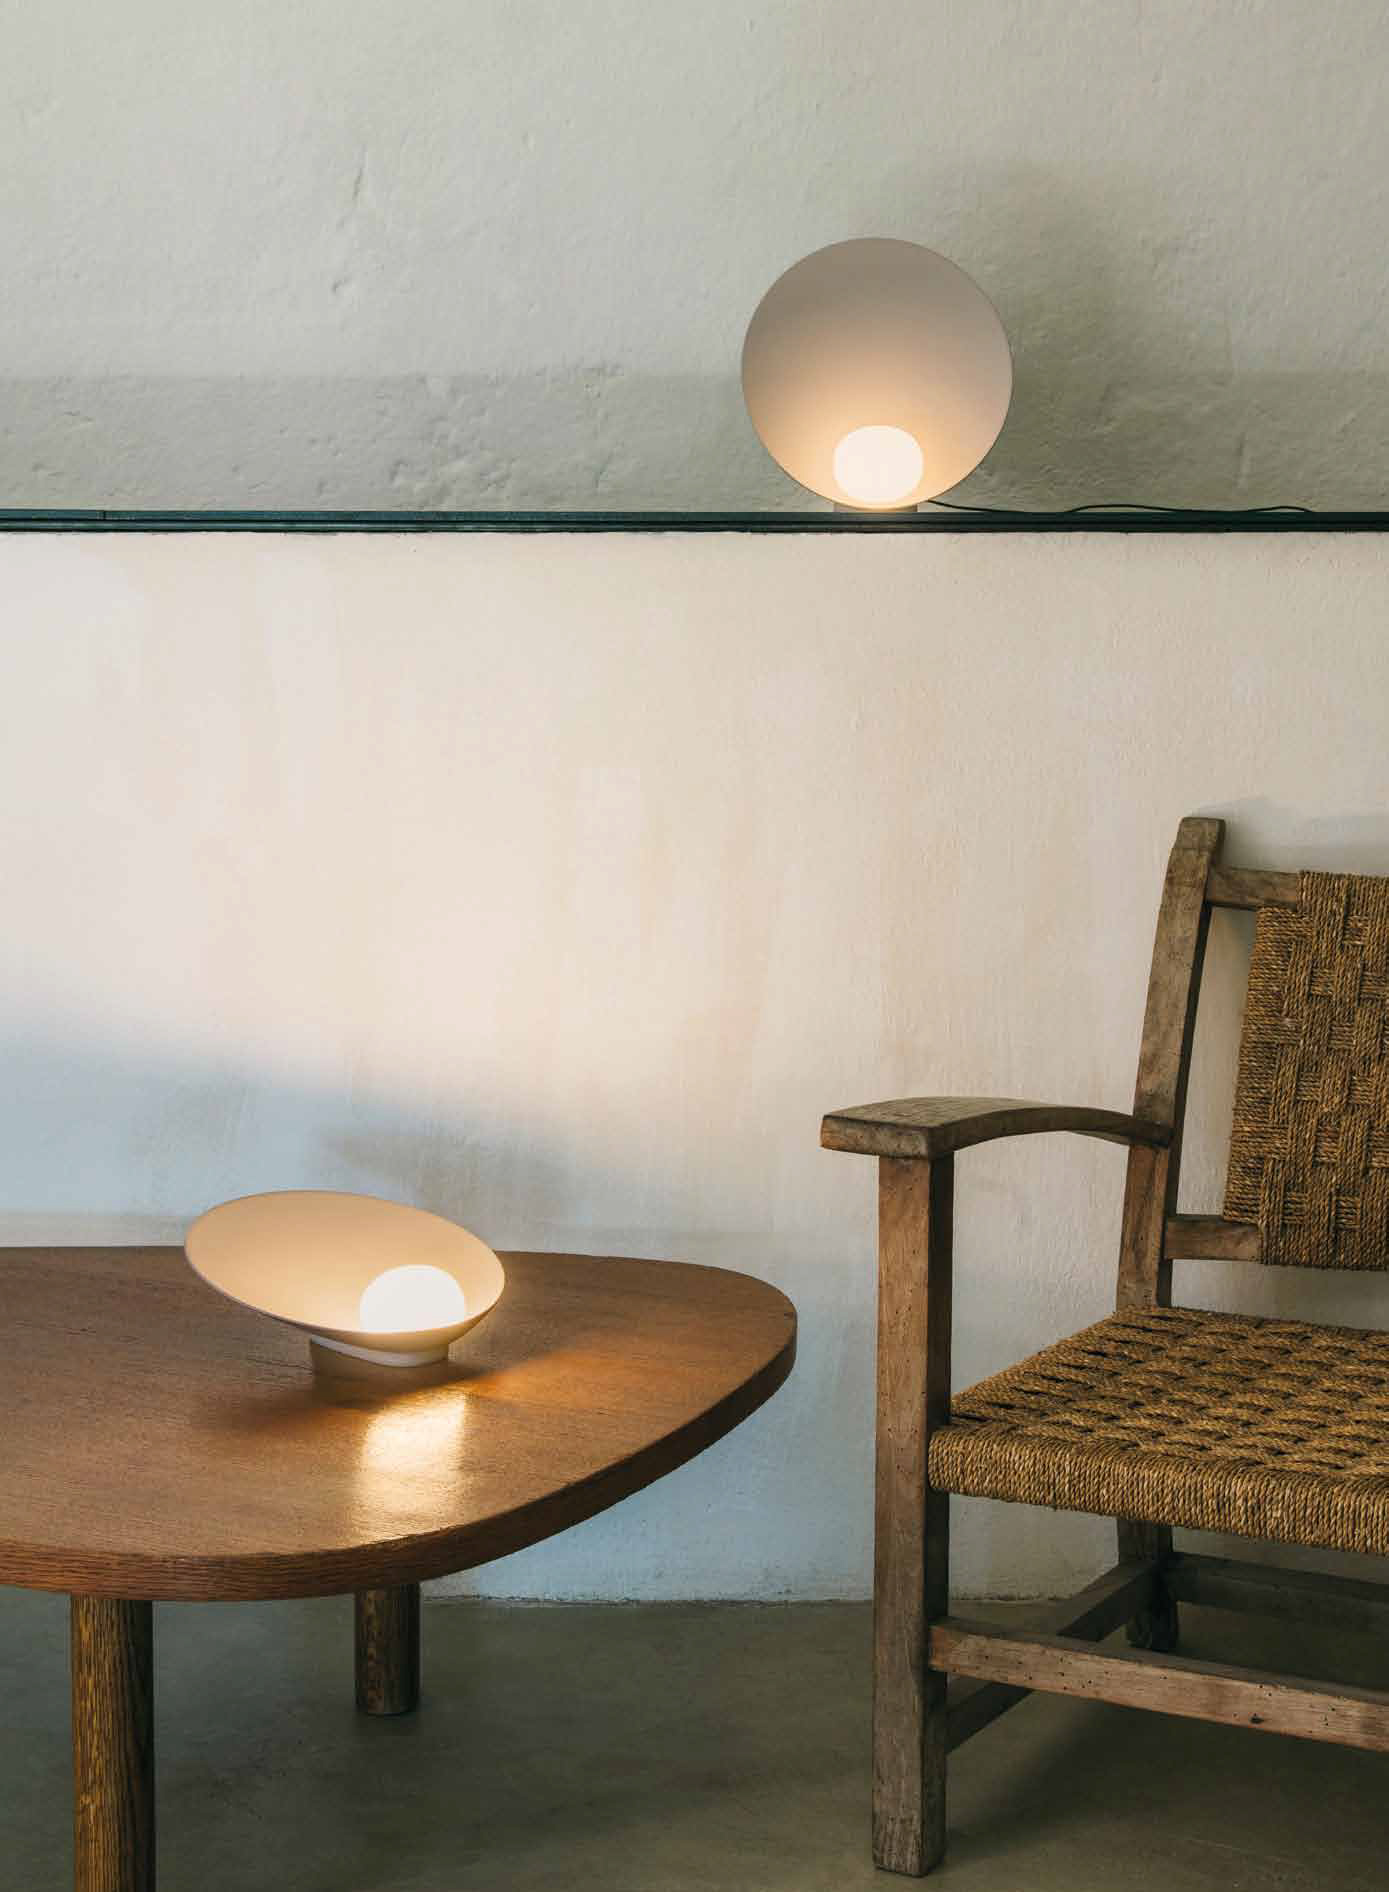 #Lightinspo: Create the Good Mood with 9 Sophisticated Lamps